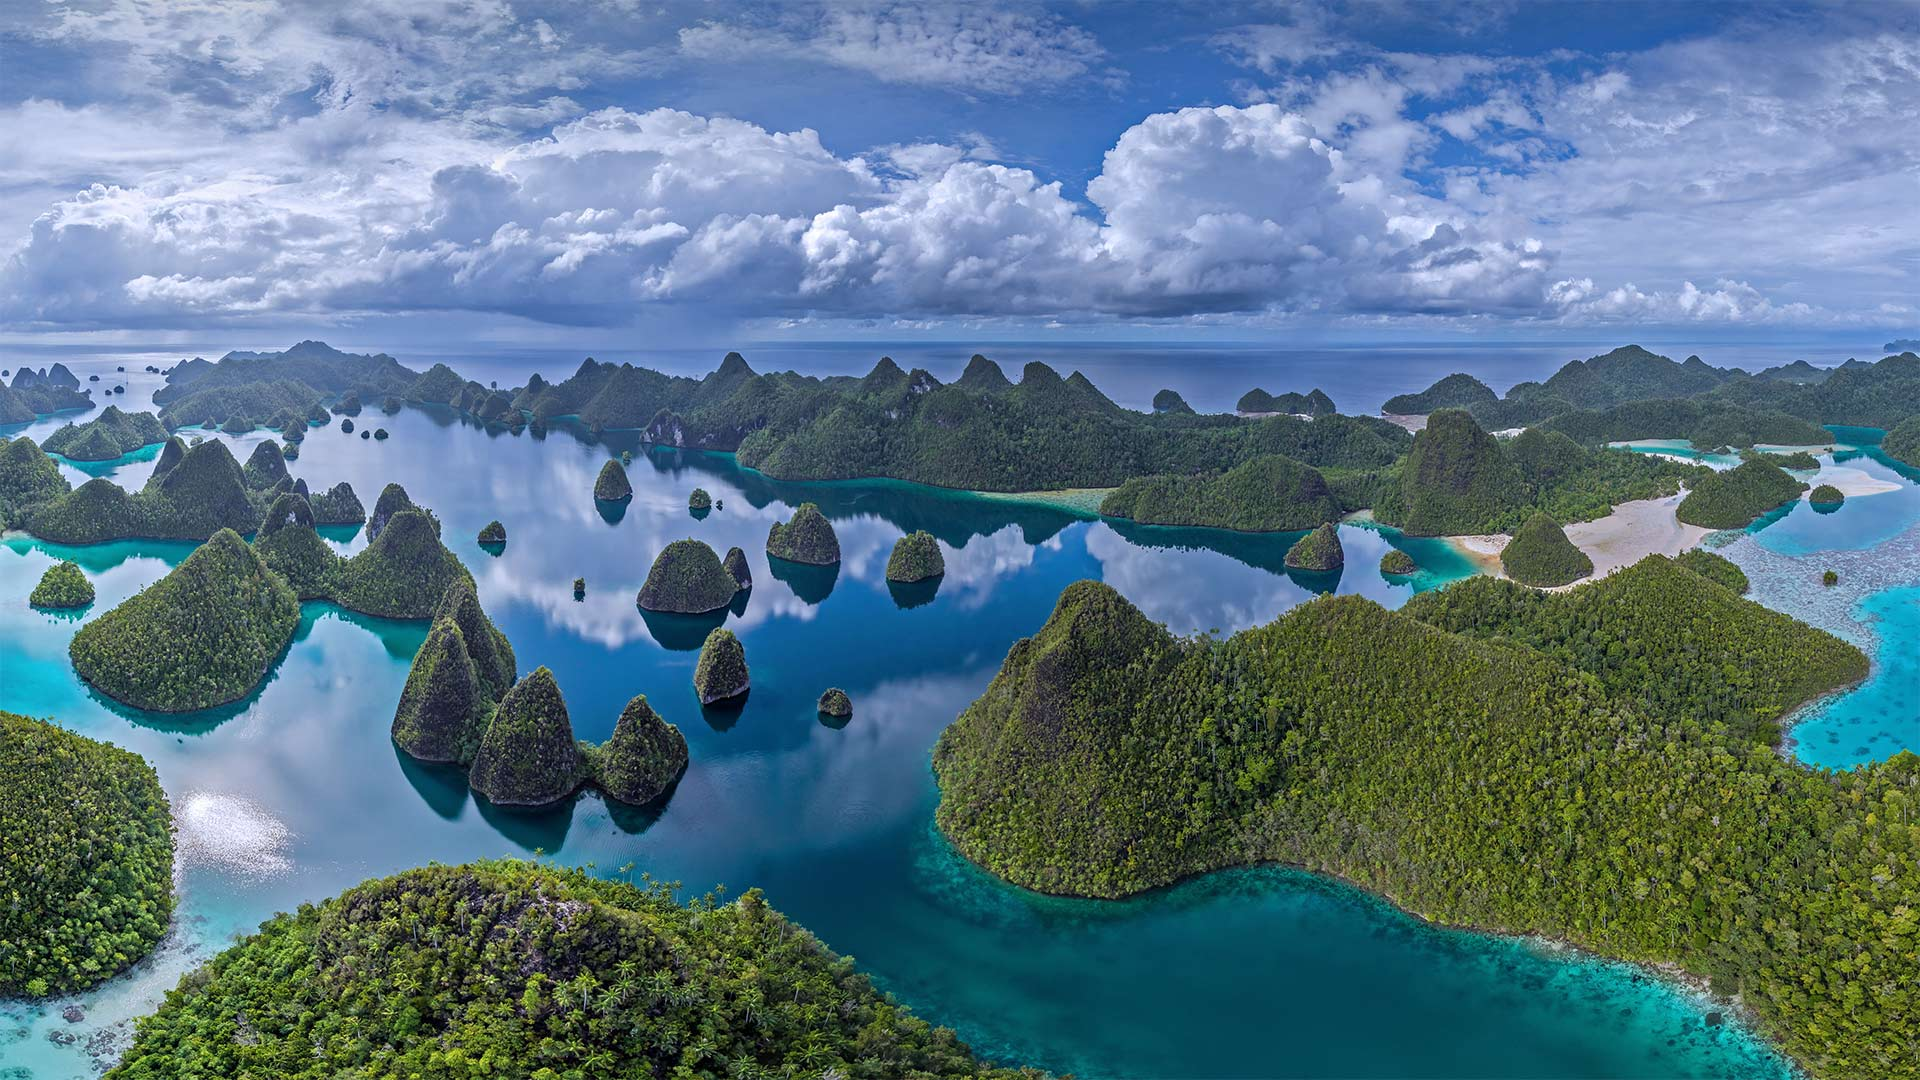 Raja Ampat, an archipelago in Indonesia (© Amazing Aerial Agency/Offset by Shutterstock)(Bing United States)